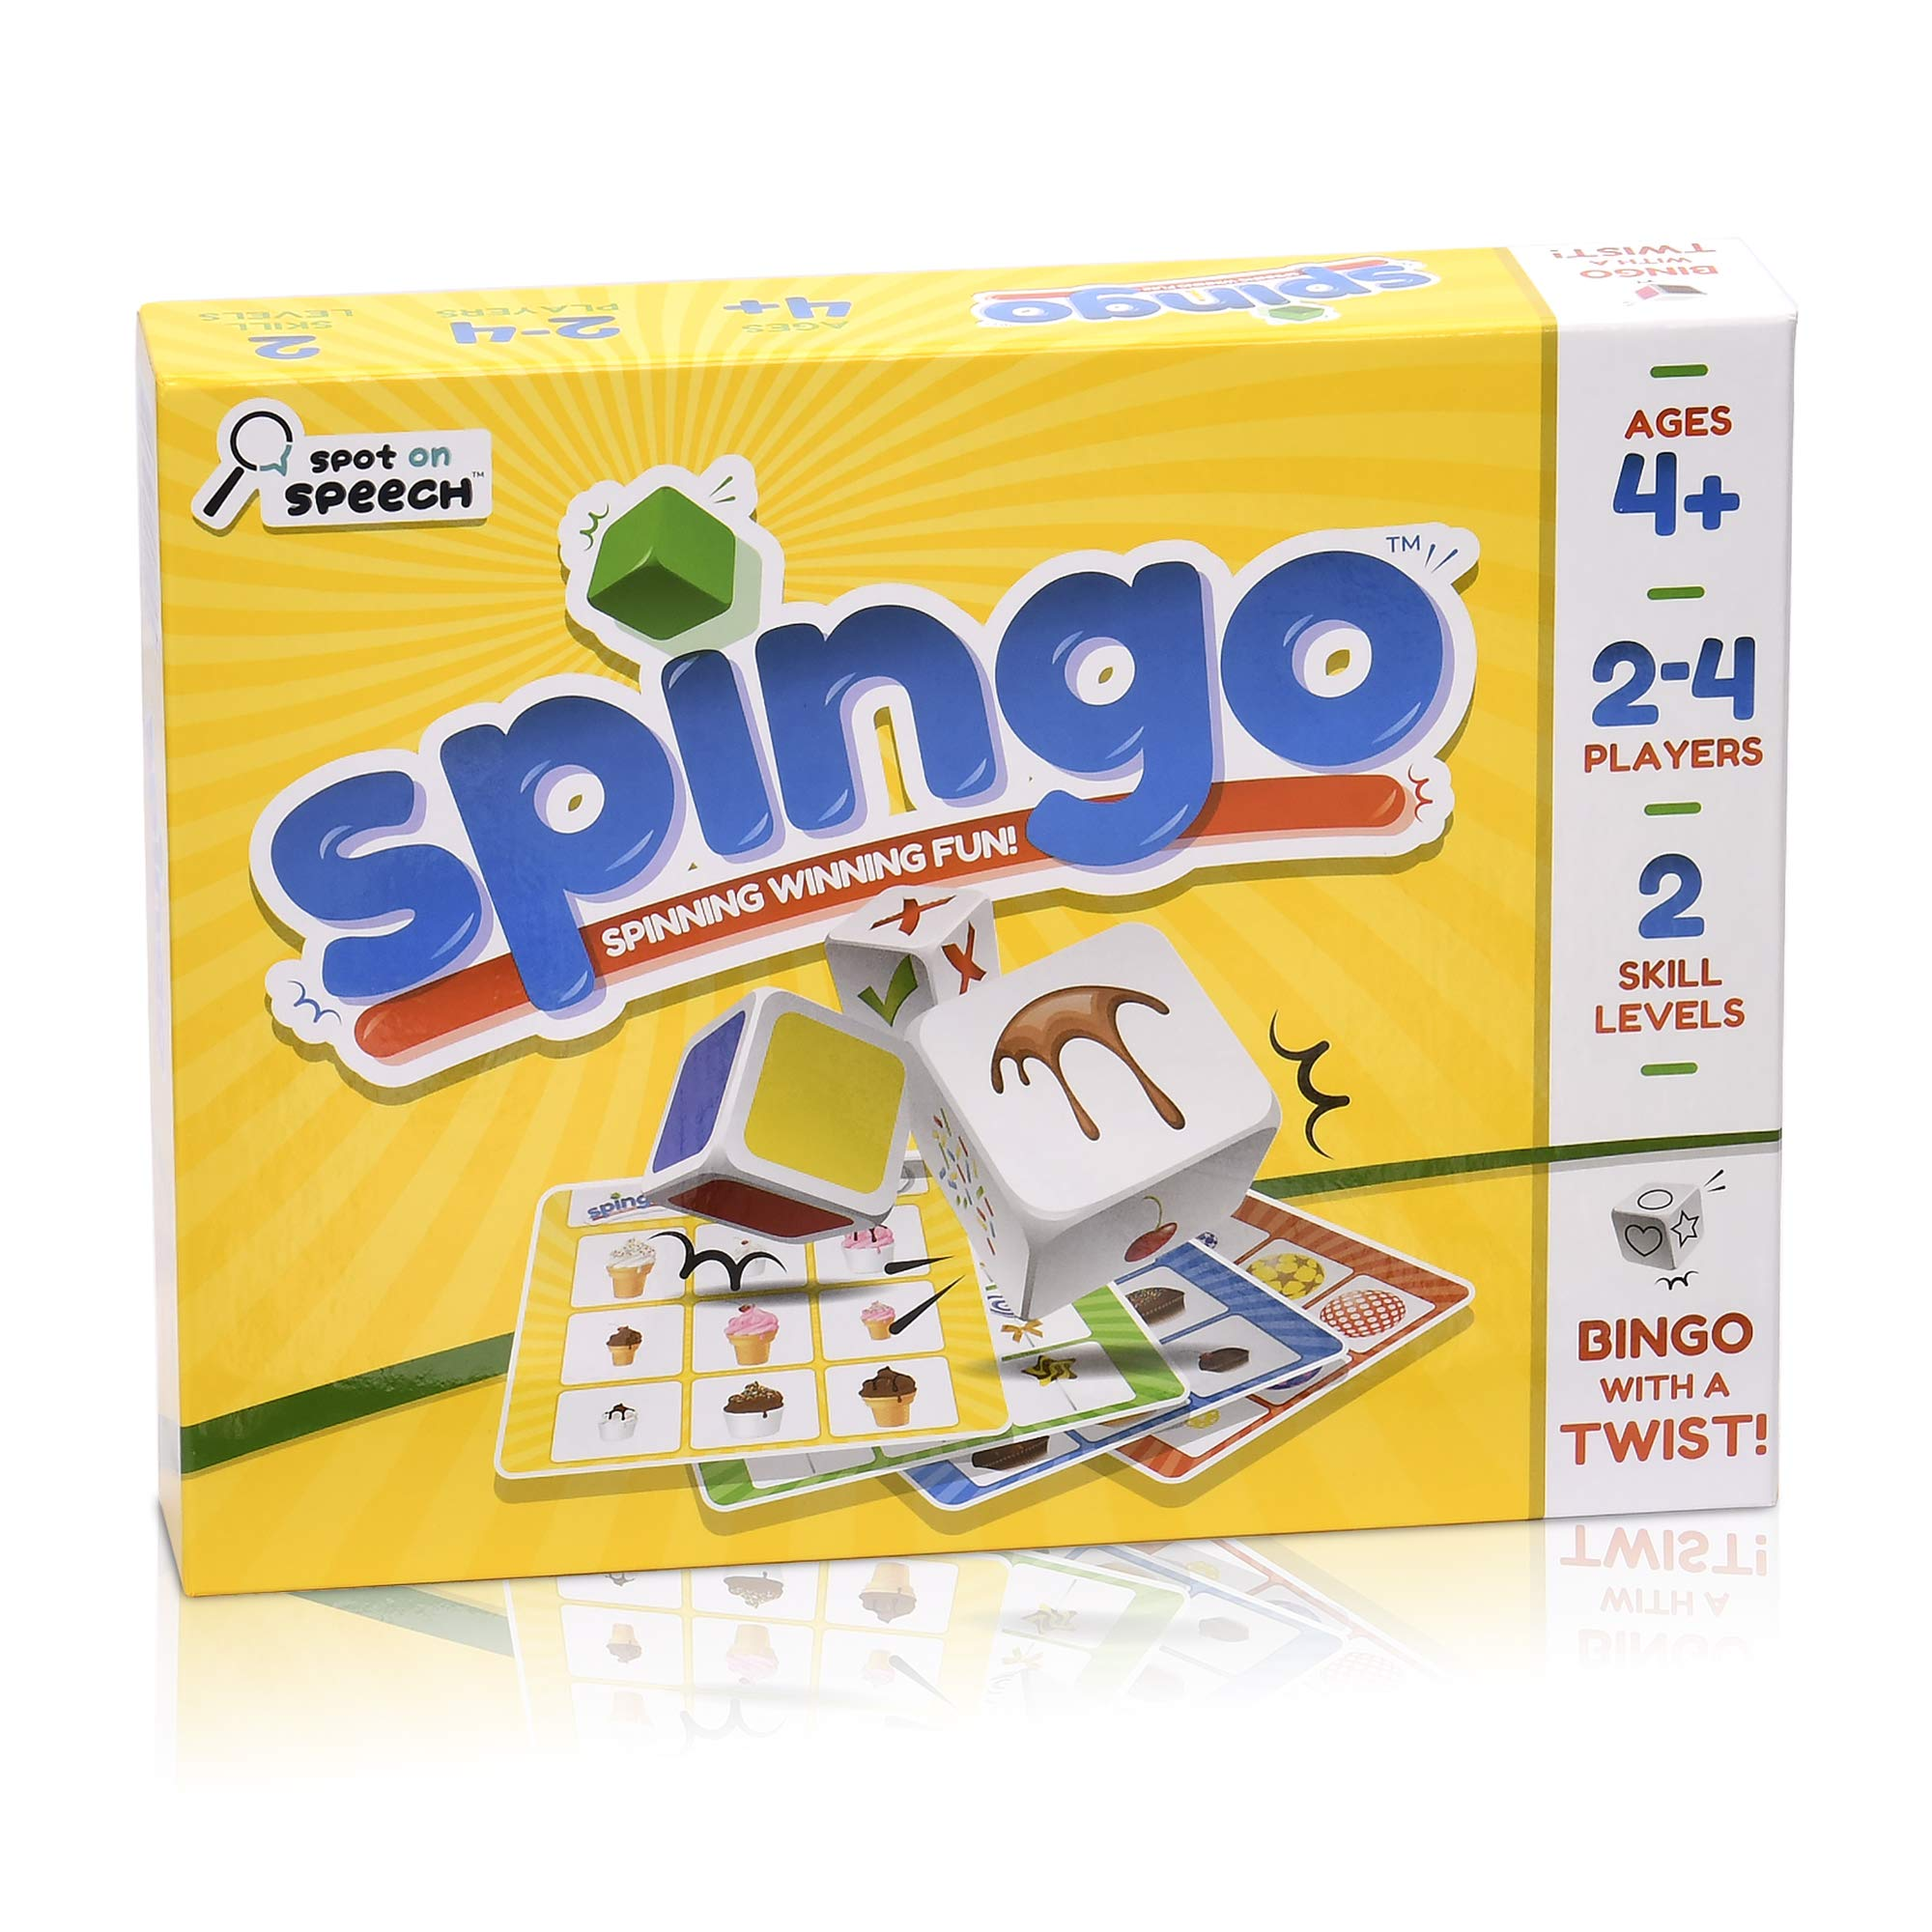 Spot on Speech Spingo - Bingo Style Game Targeting Descriptive Language, Sentence Structure, and Ability to Follow Multi-Component Directions